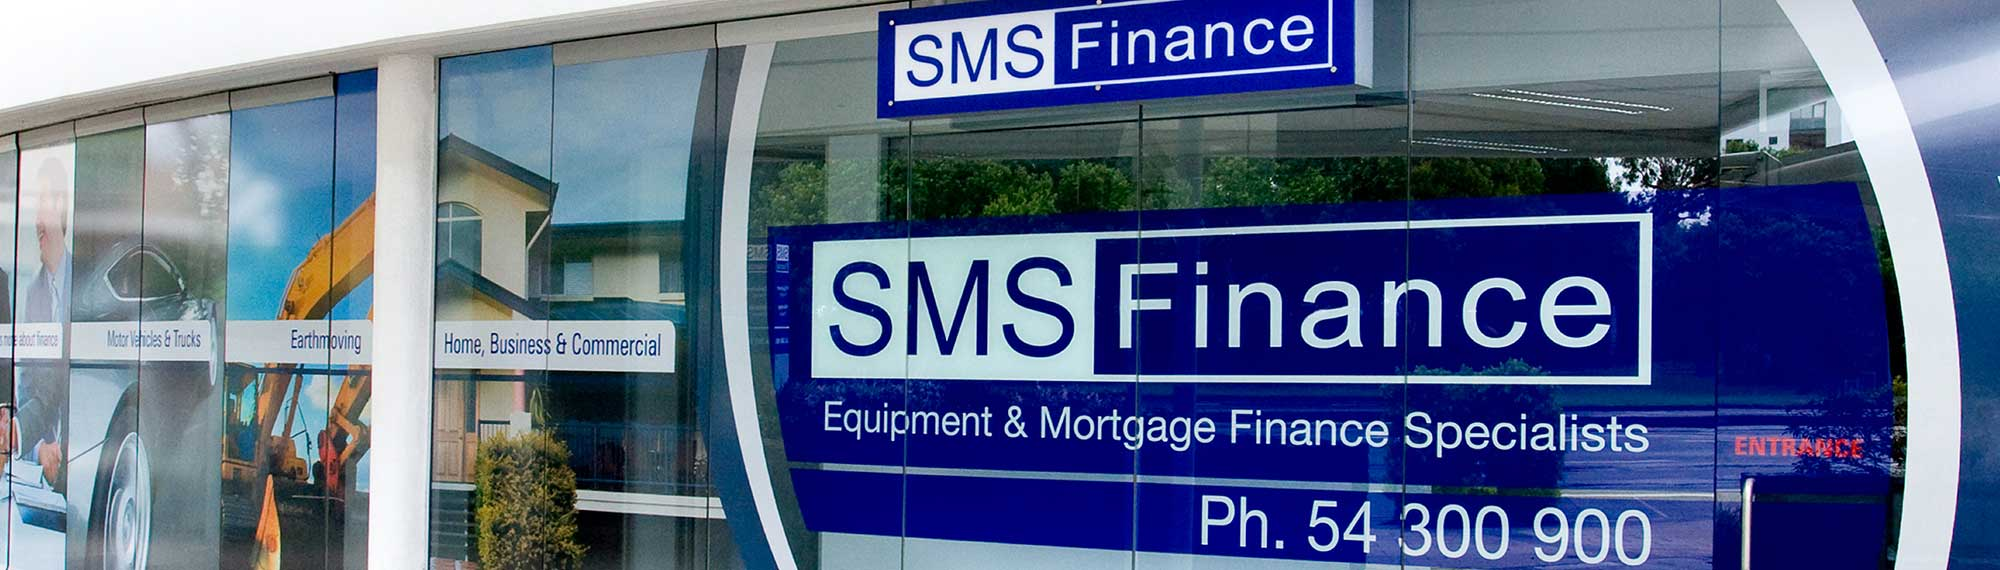 Welcome to SMS Finance